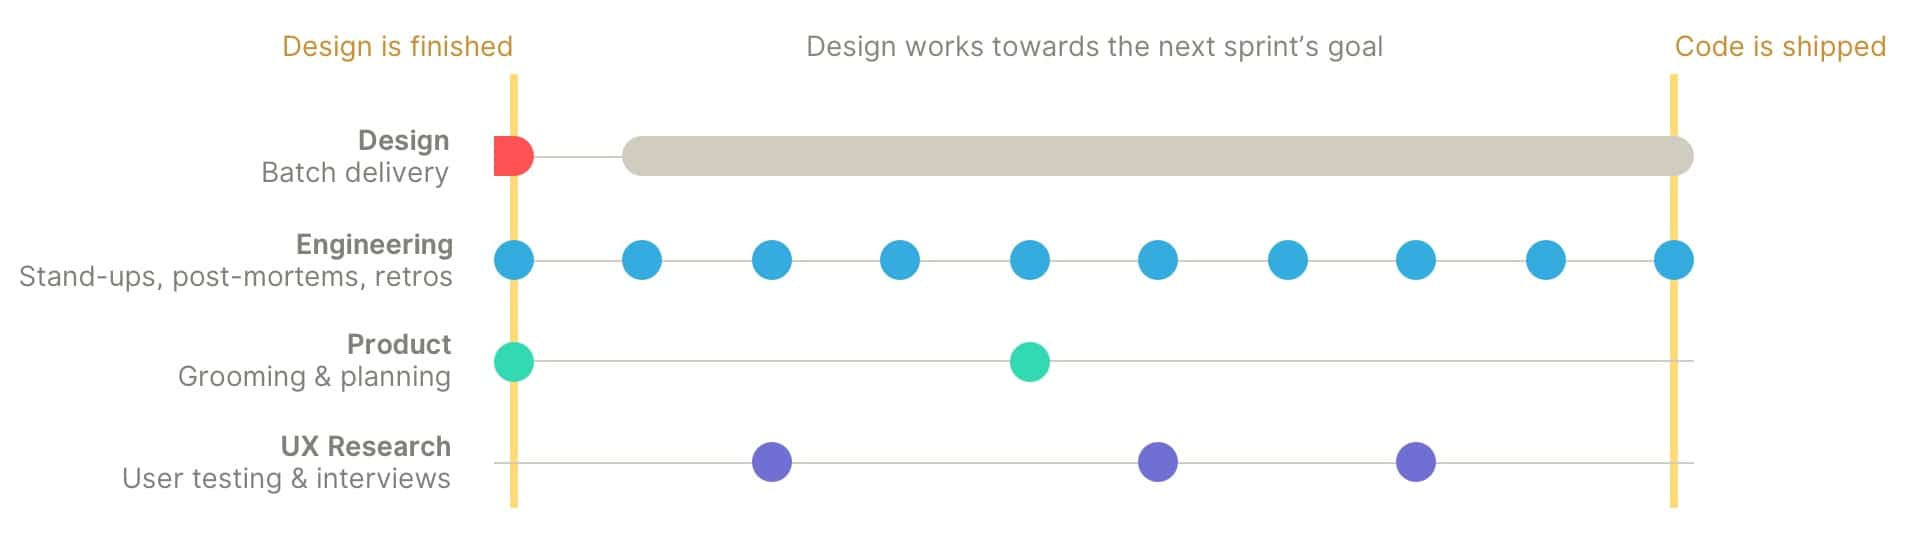 The traditional process of delivering design